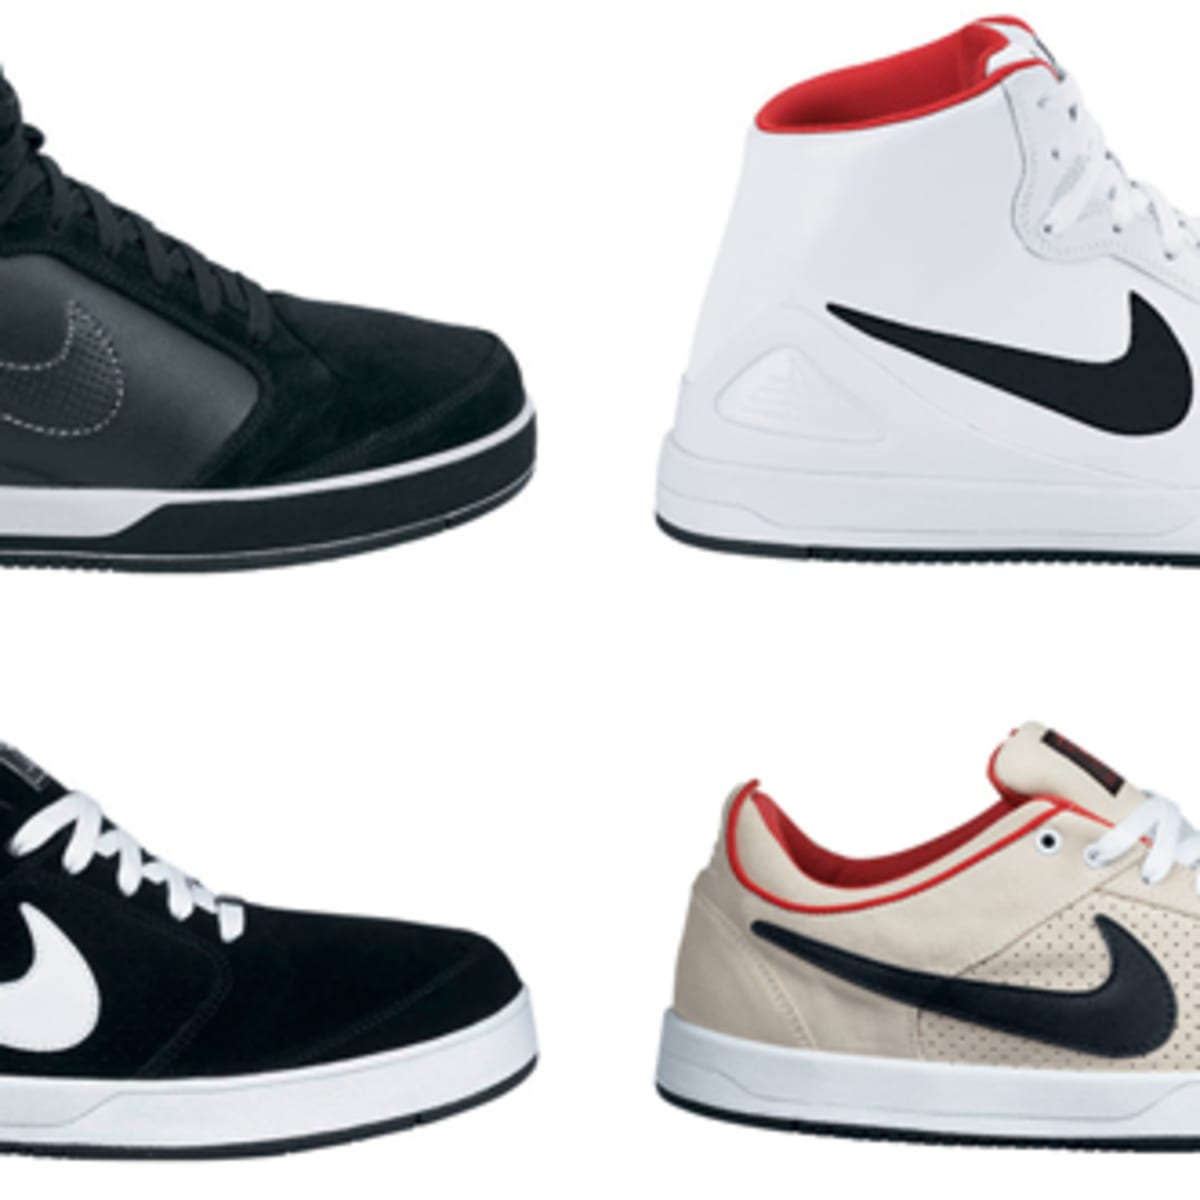 Nike SB Zoom Paul Rodriguez (P-Rod) 4 - Sneaker Collection ...